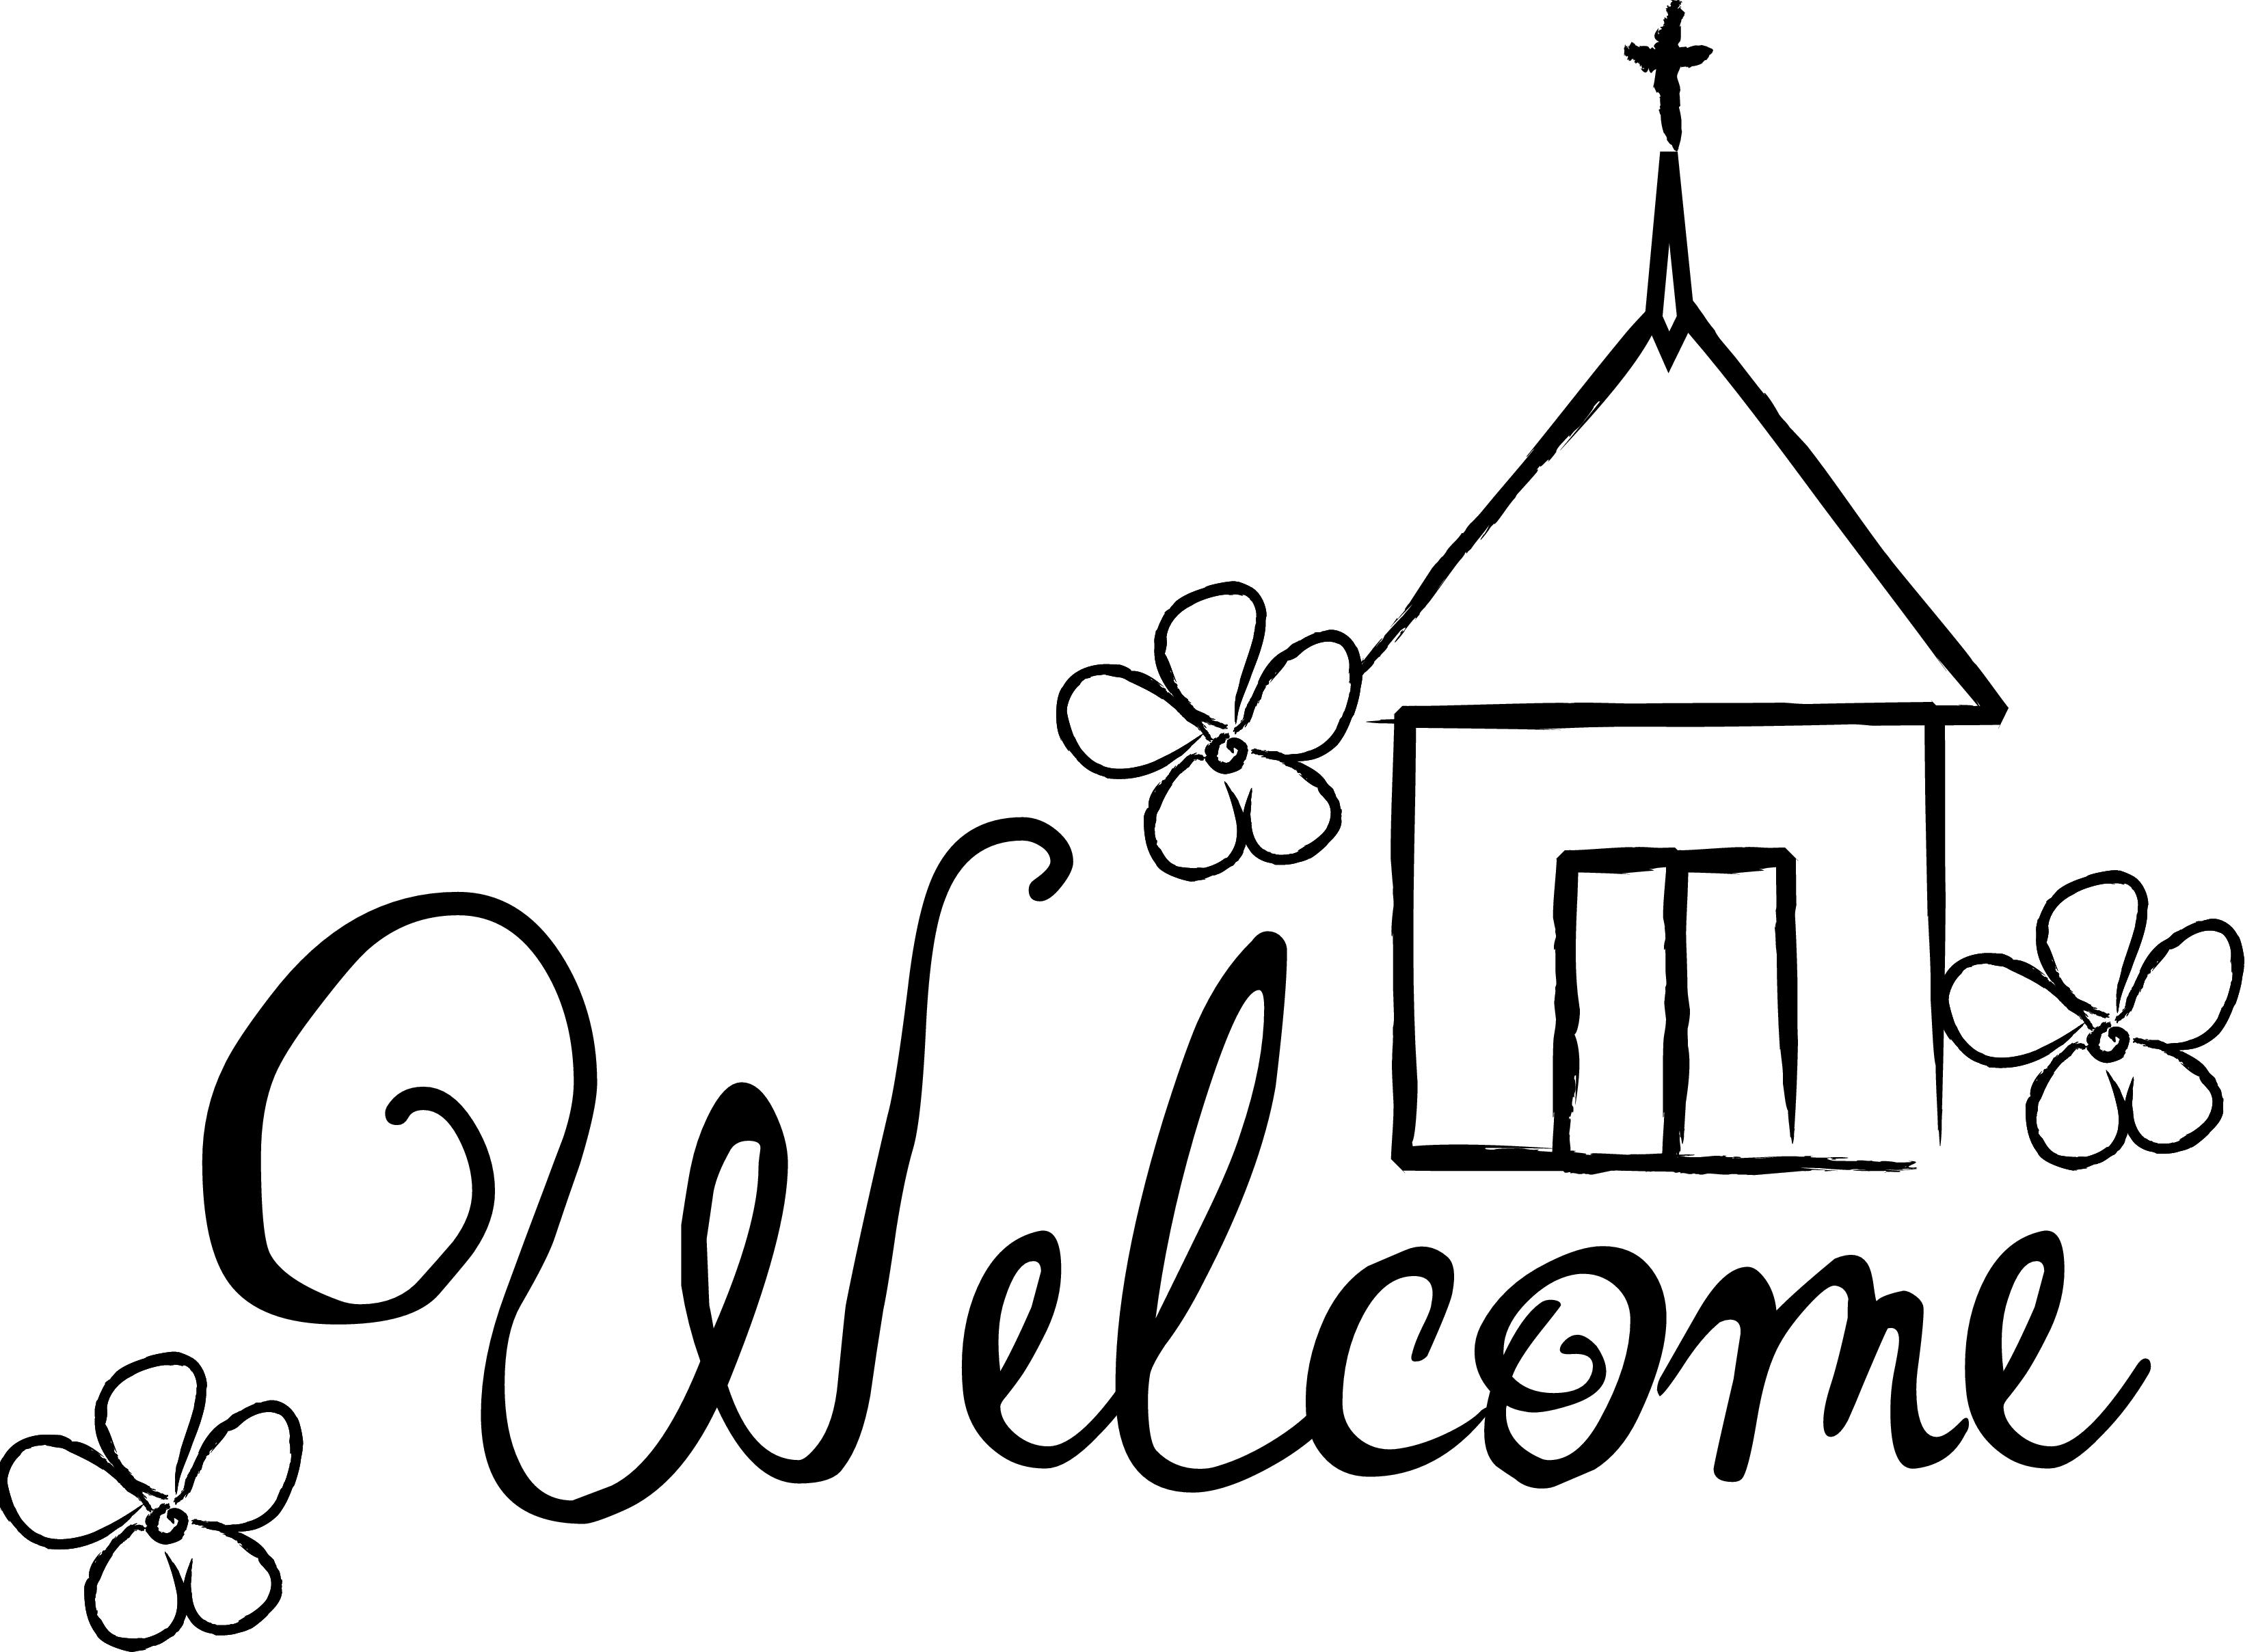 Welcome clipart for church png free library Free Church Welcome Cliparts, Download Free Clip Art, Free ... png free library